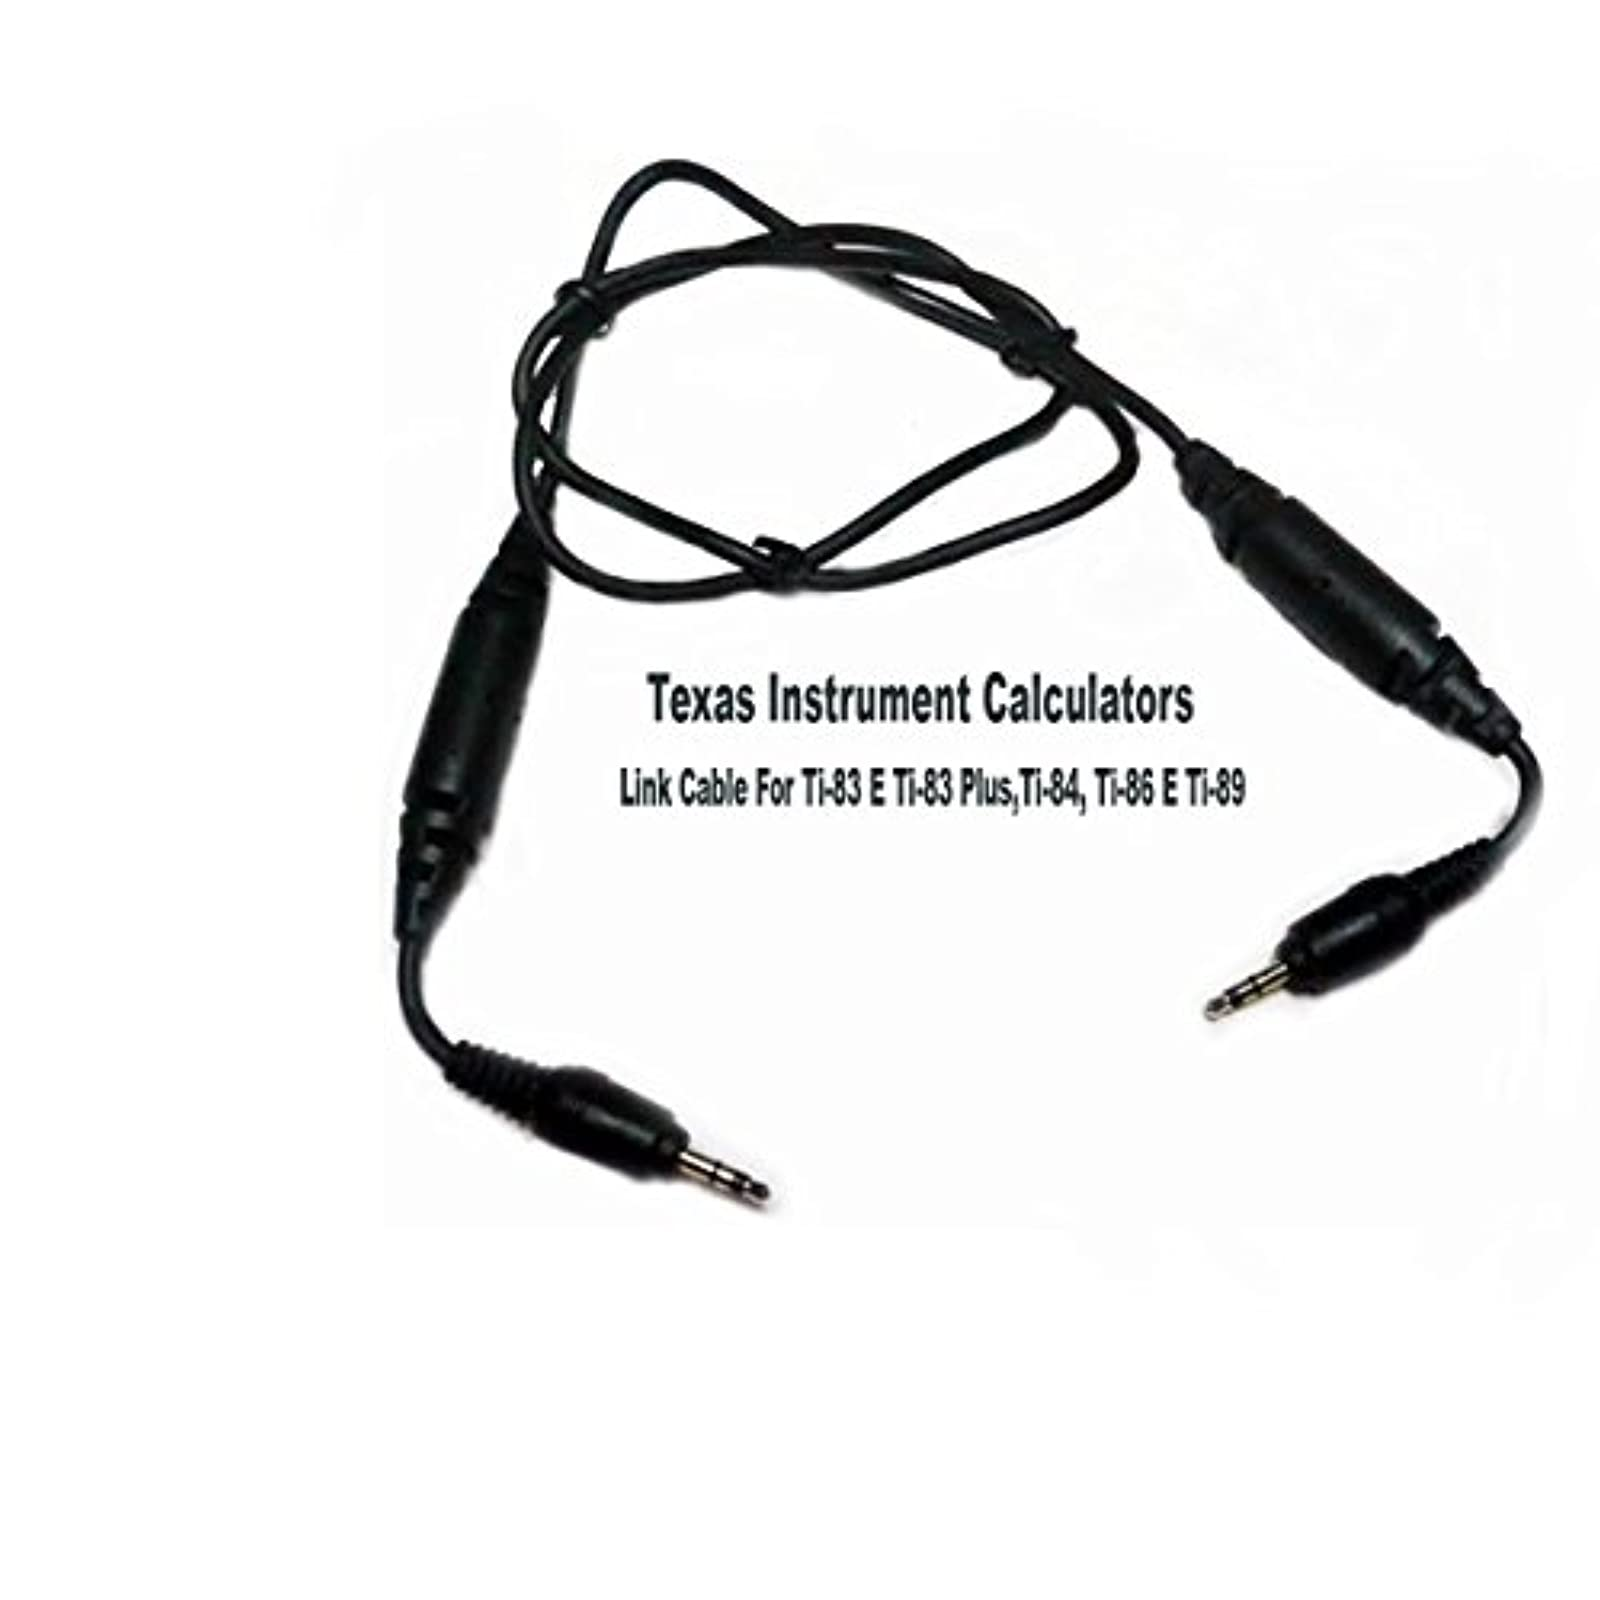 Texas Instrument Data Link Cable Scientific Graphing Calculator Ti 83